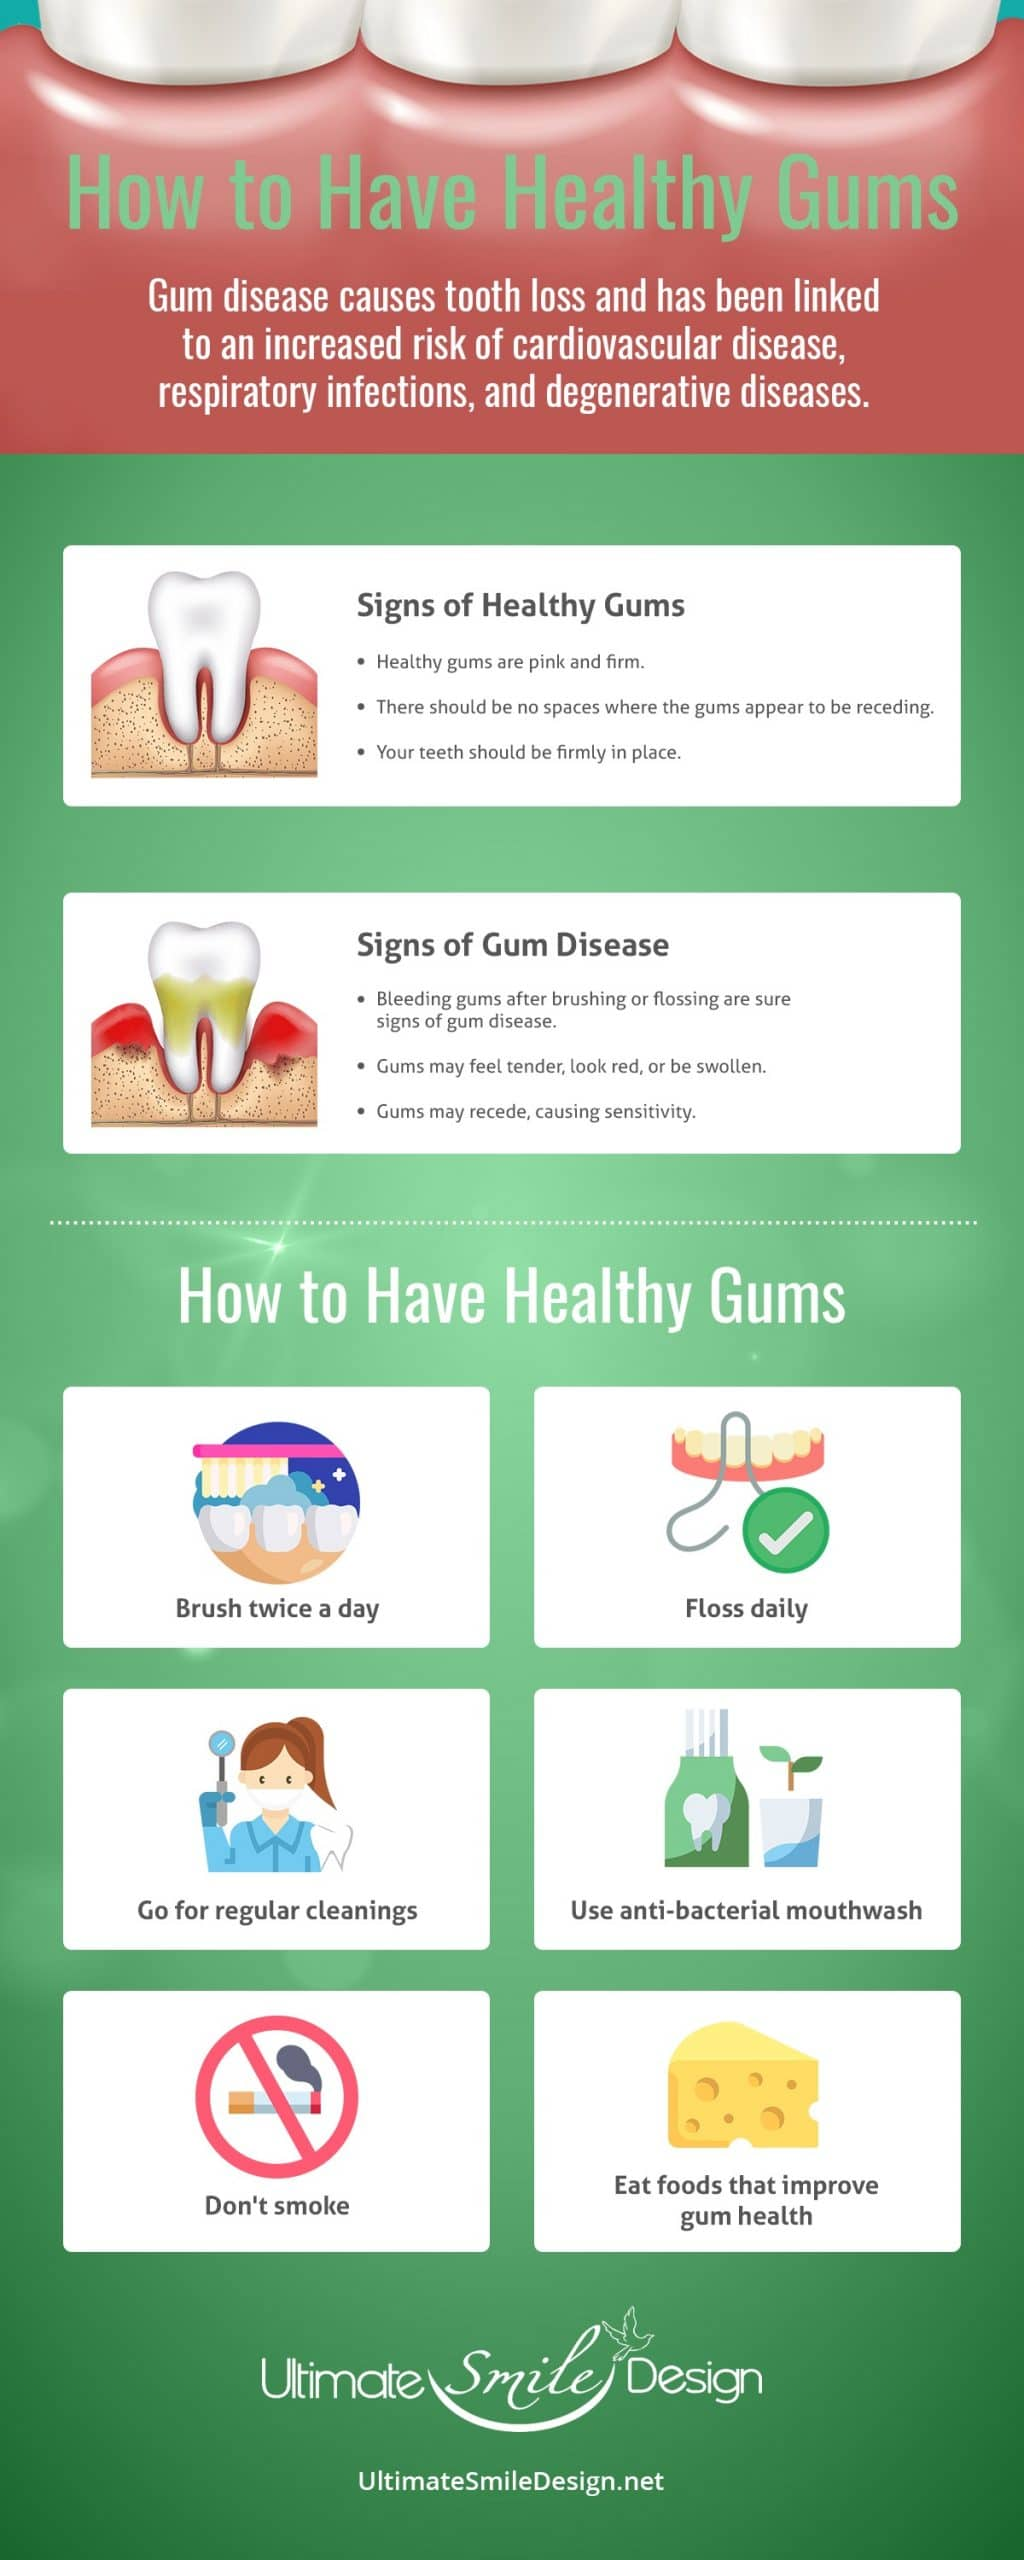 how to have healthy gums infographic